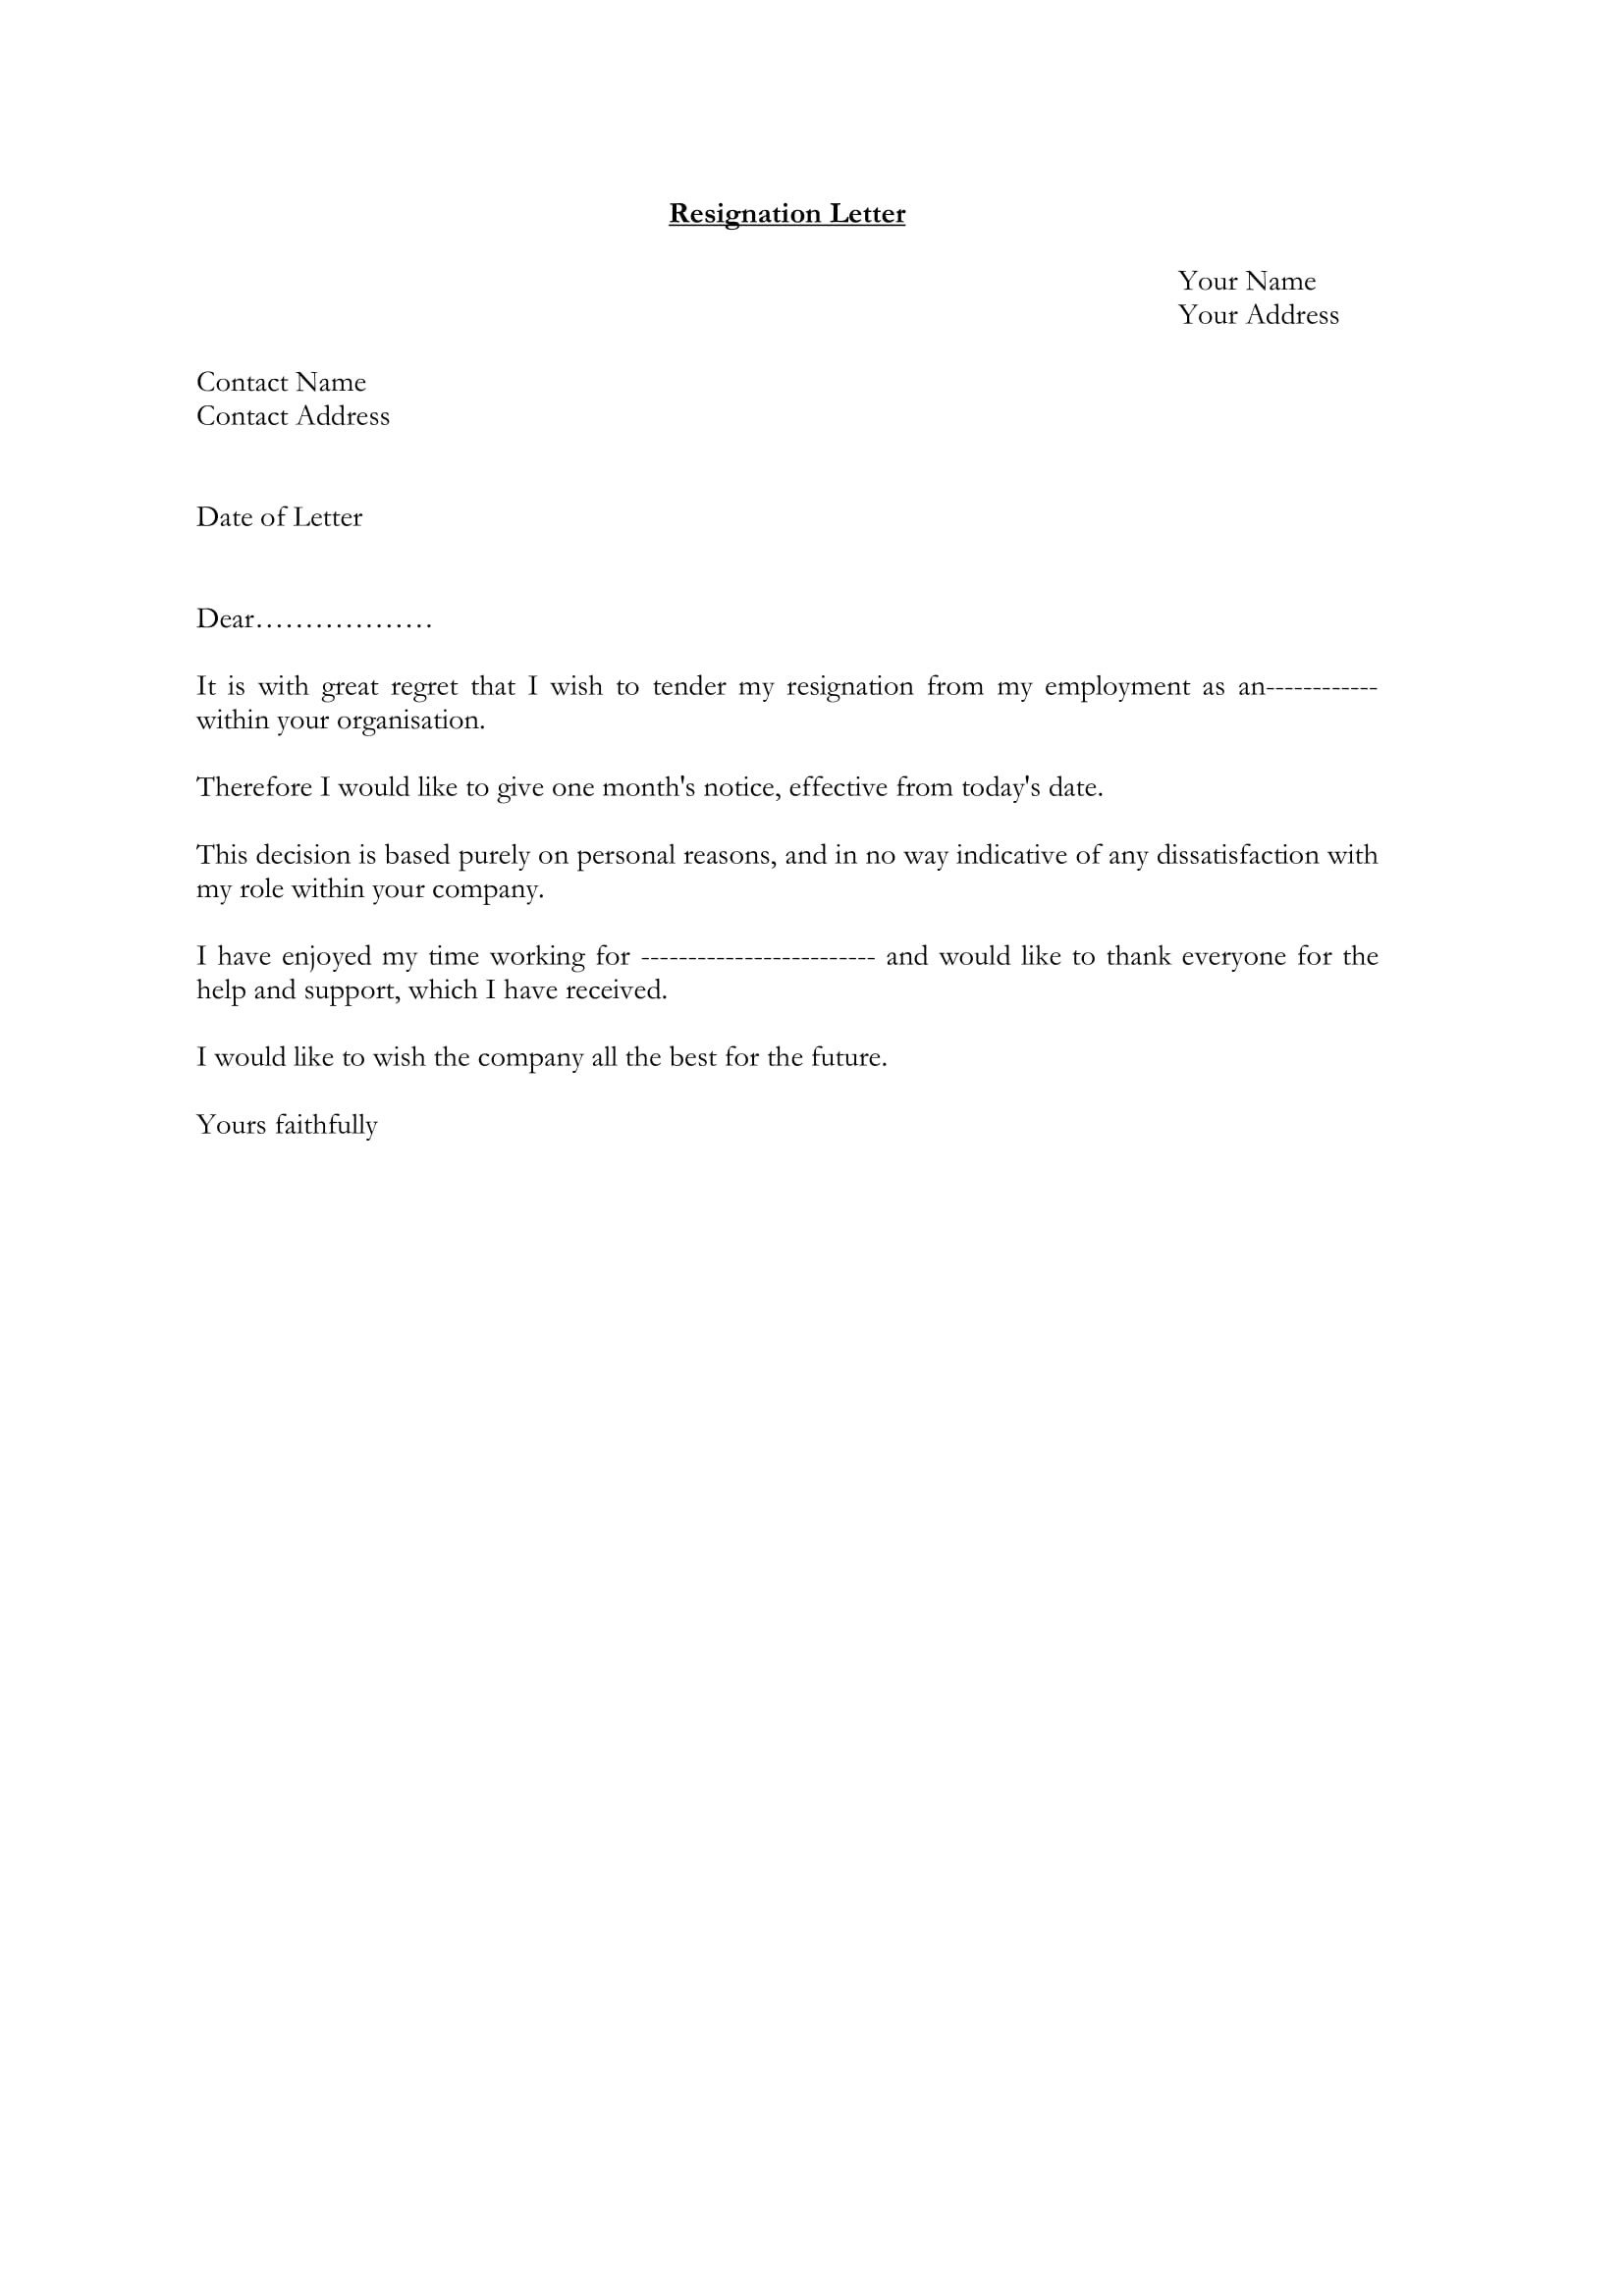 Letters Of Resignation Template 12 Employee Resignation Letter Examples Pdf Word